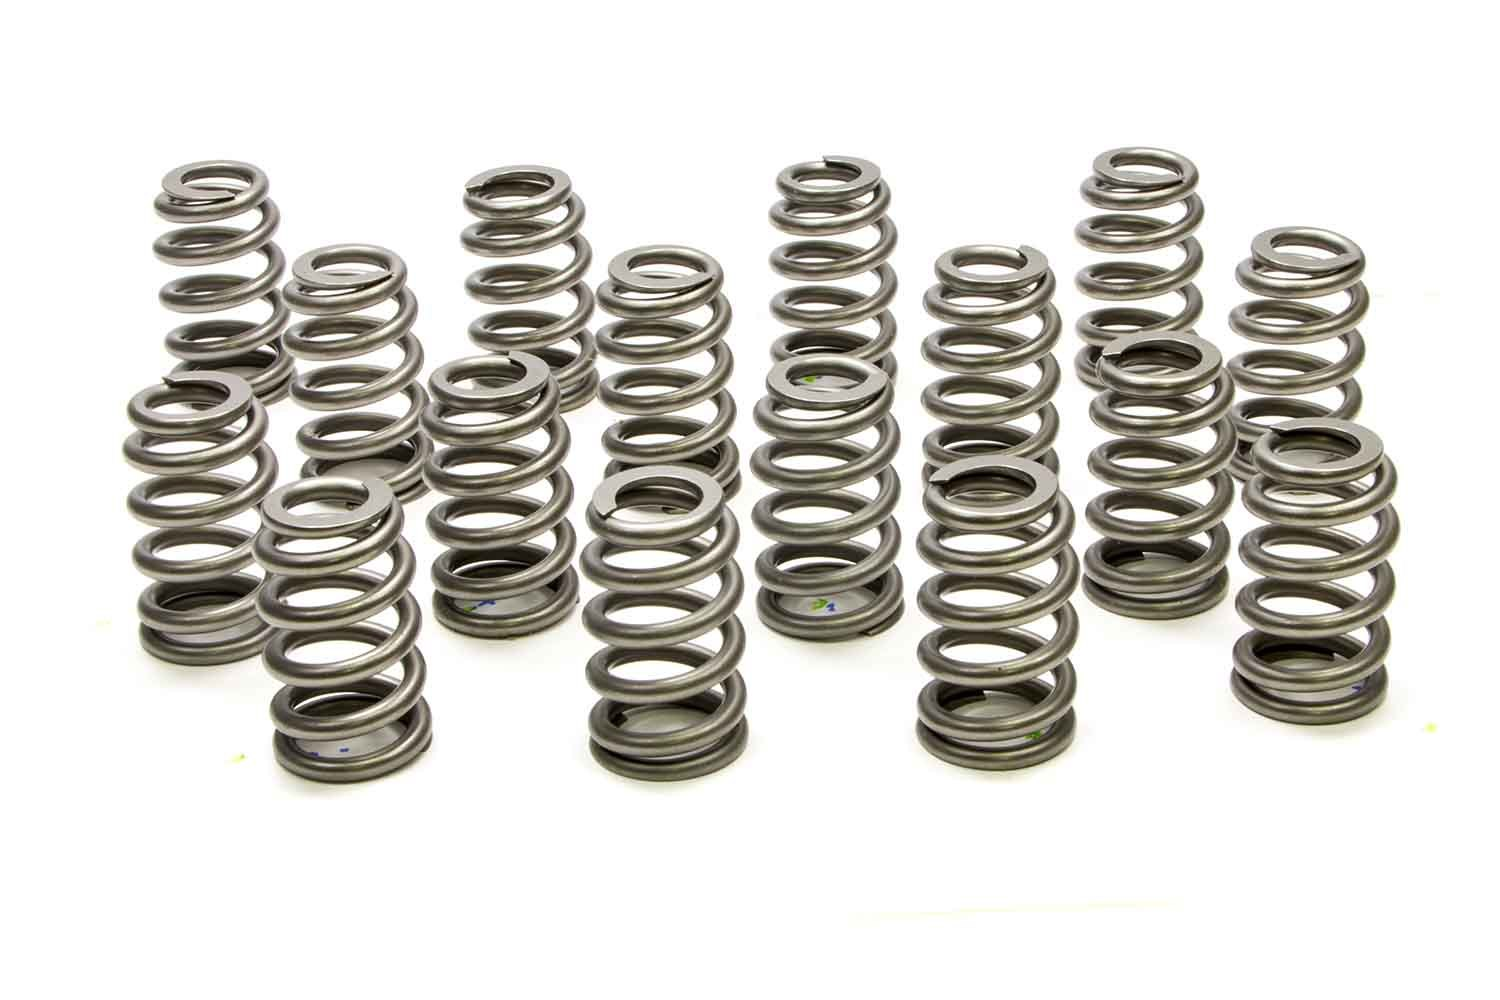 PAC Racing Springs PAC-1211X Valve Spring, RPM Series, Beehive Spring, 385 lb/in Spring Rate, 1.100 in Coil Bind, 1.290 in OD, Set of 16